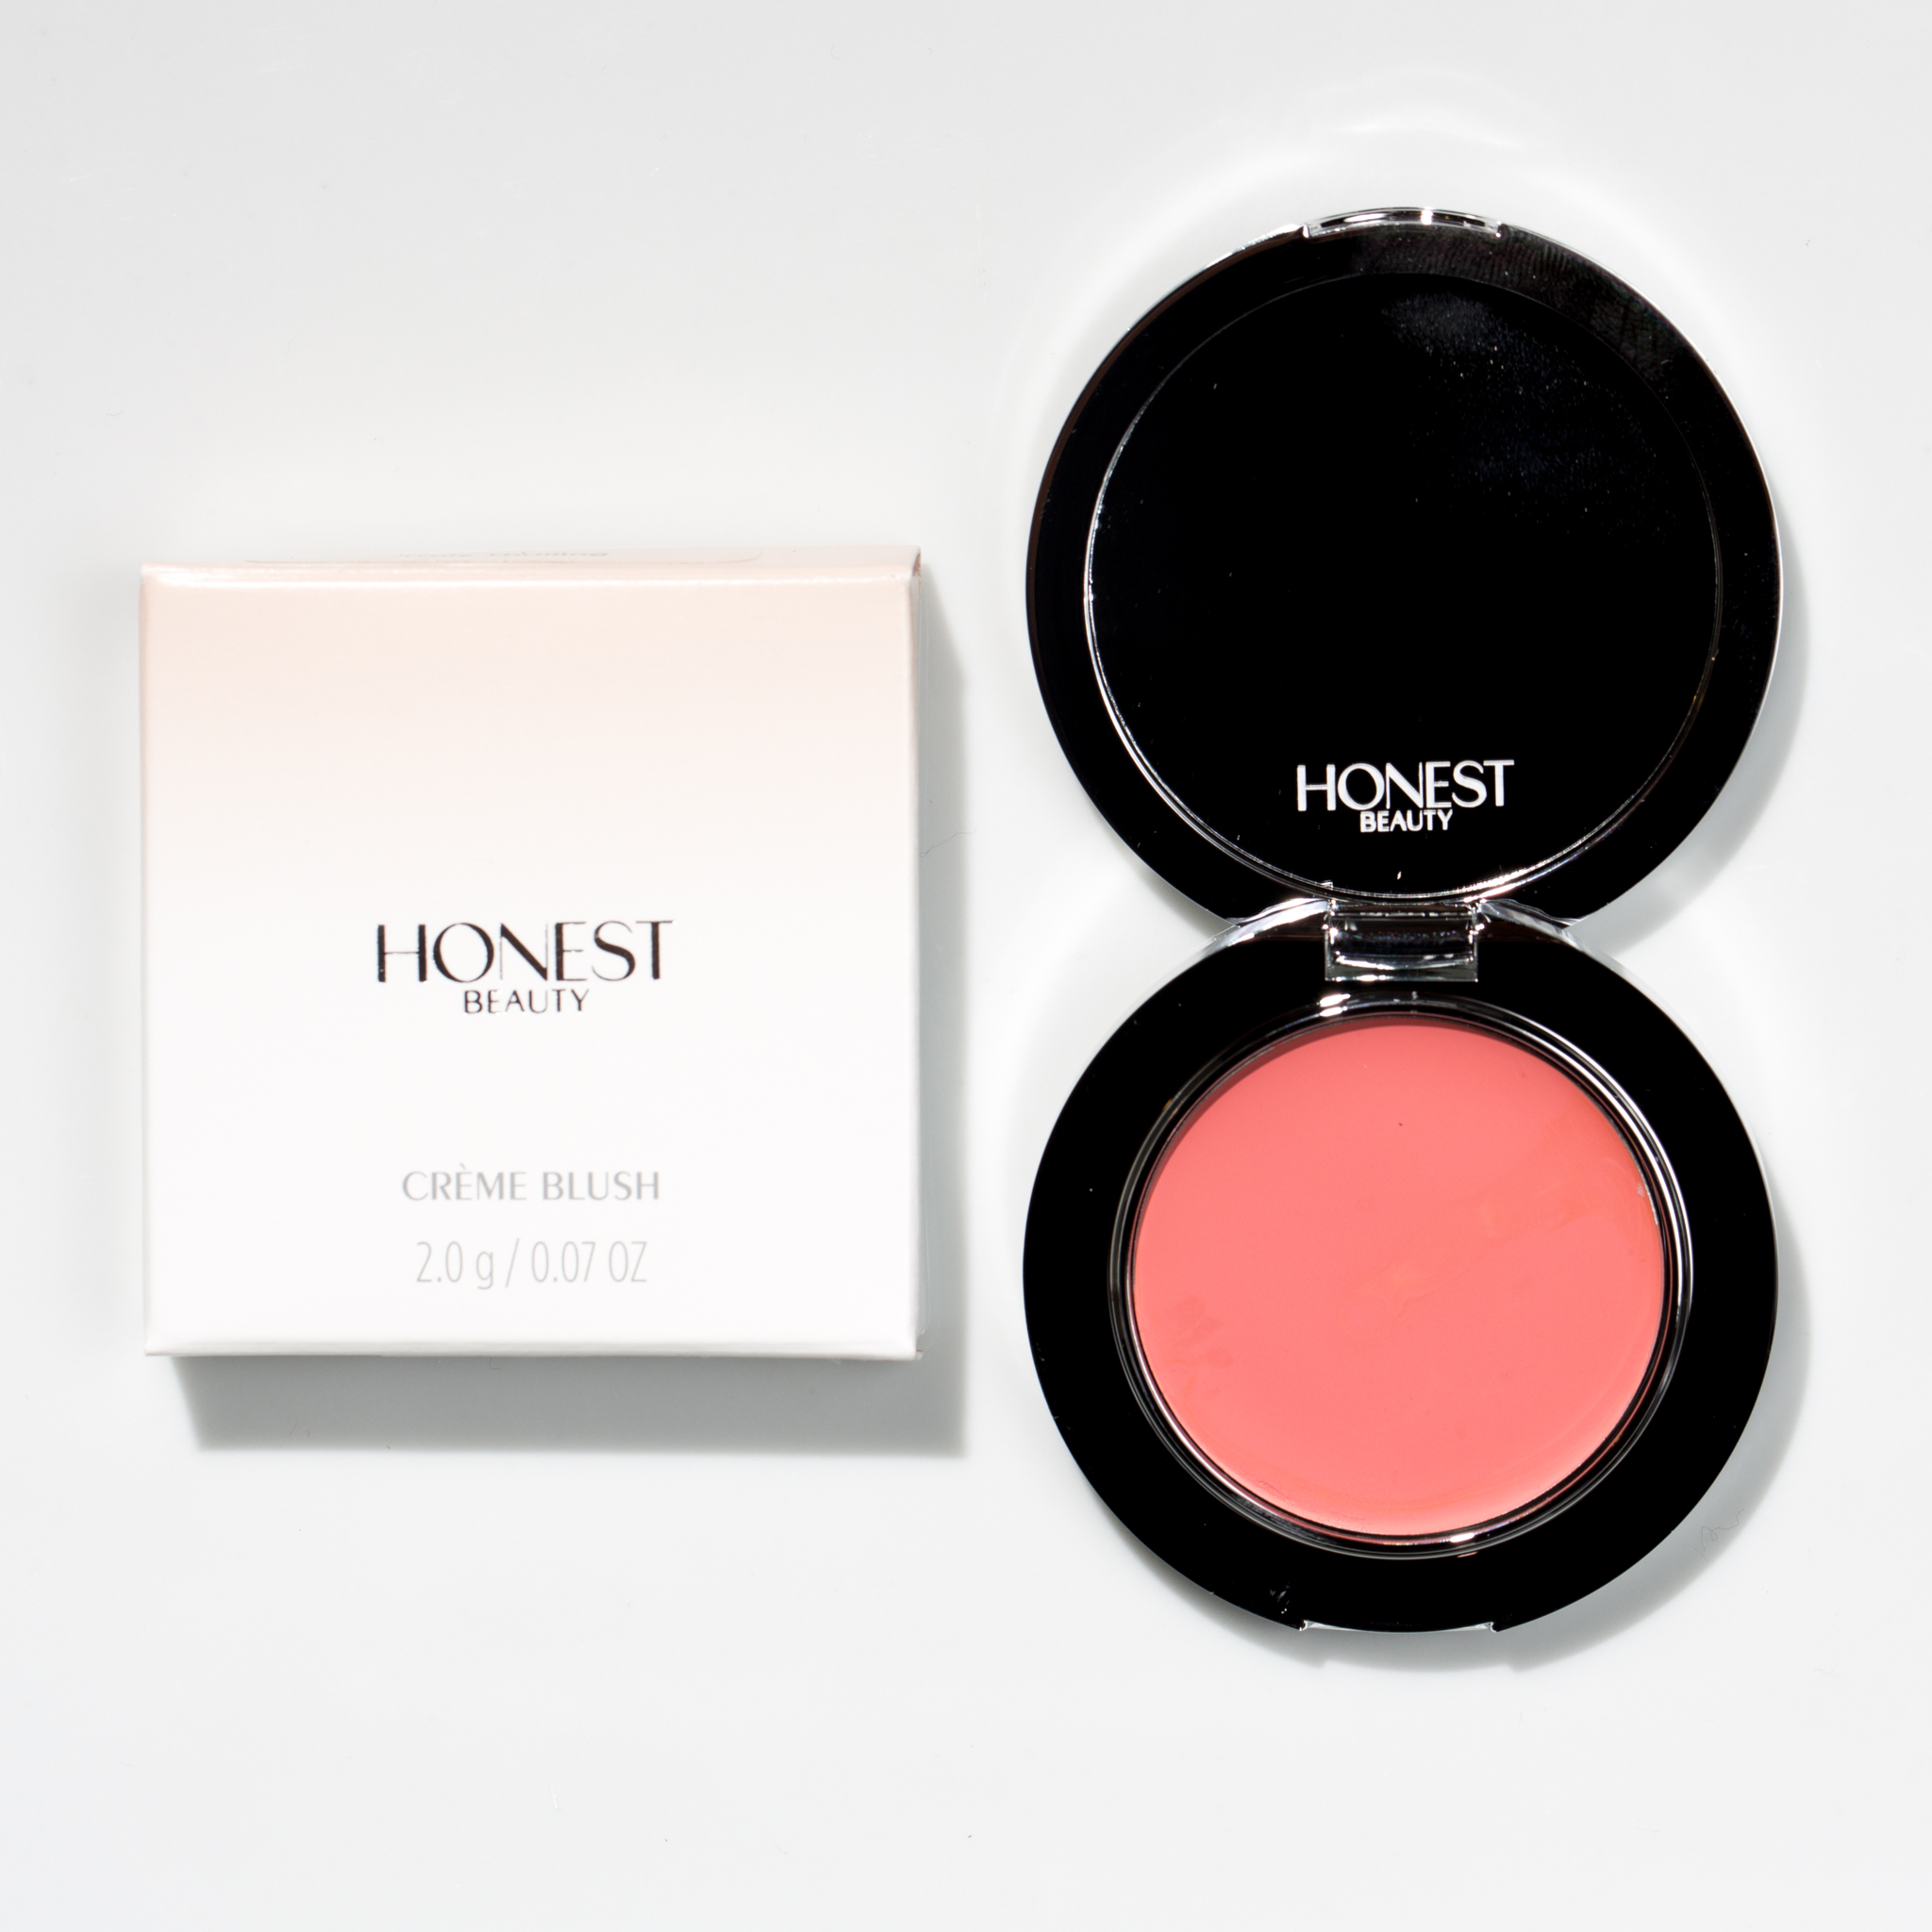 Honest Beauty Créme Blush in Truly Flirting